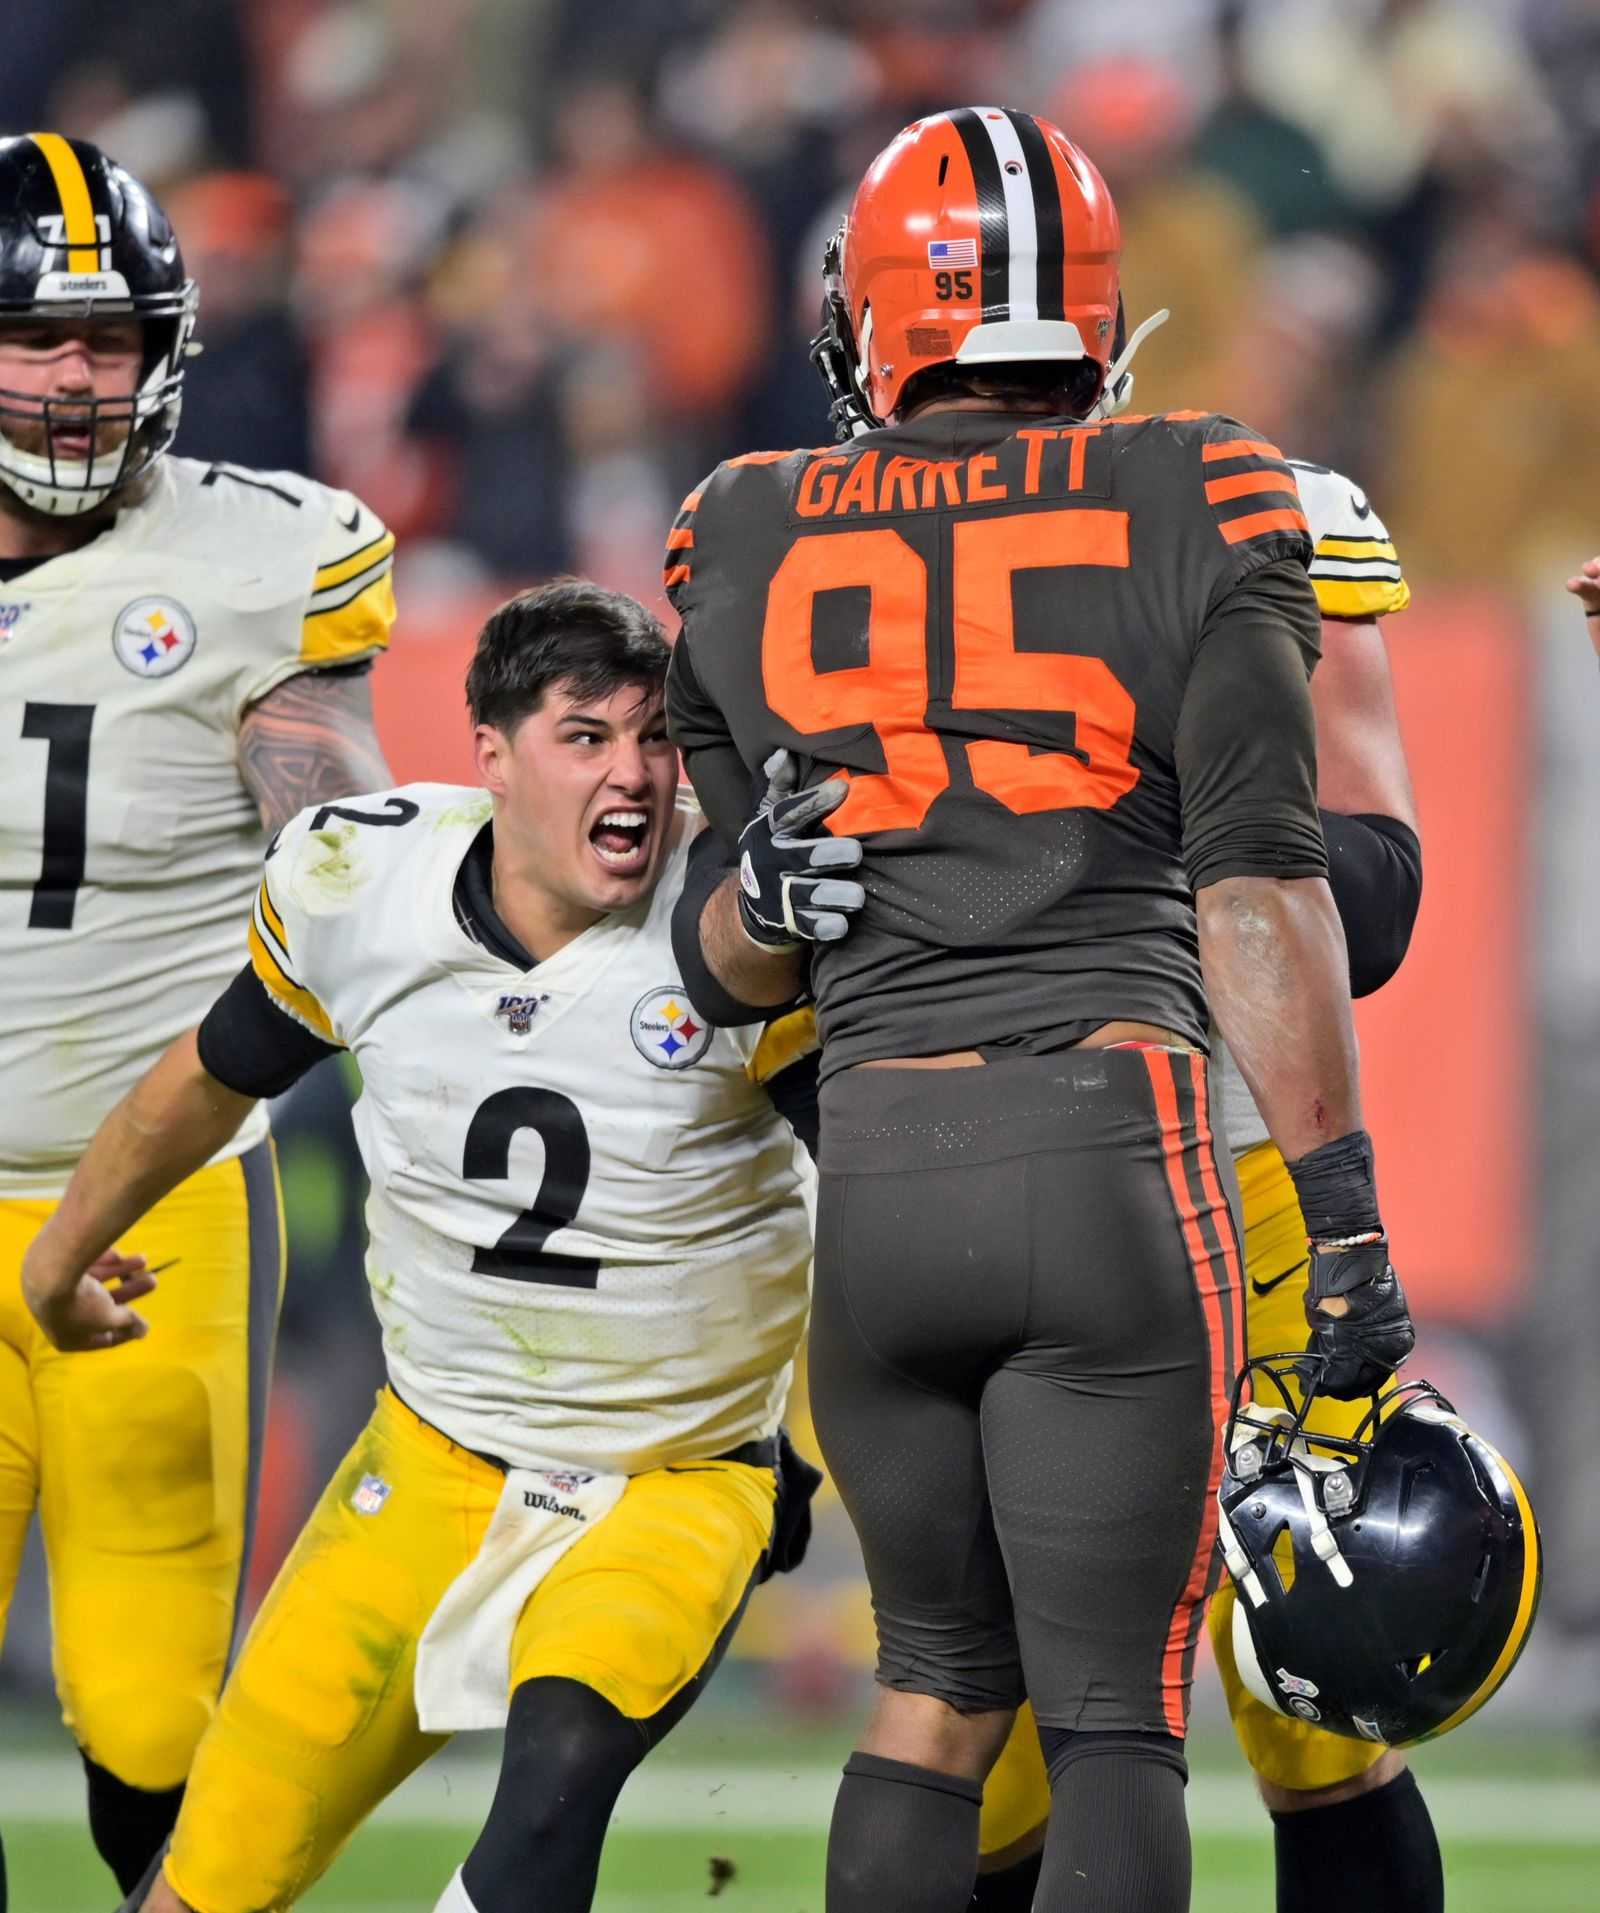 Pittsburgh Steelers quarterback Mason Rudolph (2) goes after Cleveland Browns defensive end Myles Garrett (95) during the second half of an NFL football game Thursday, Nov. 14, 2019, in Cleveland. The Browns won 21-7. (AP Photo/David Richard)